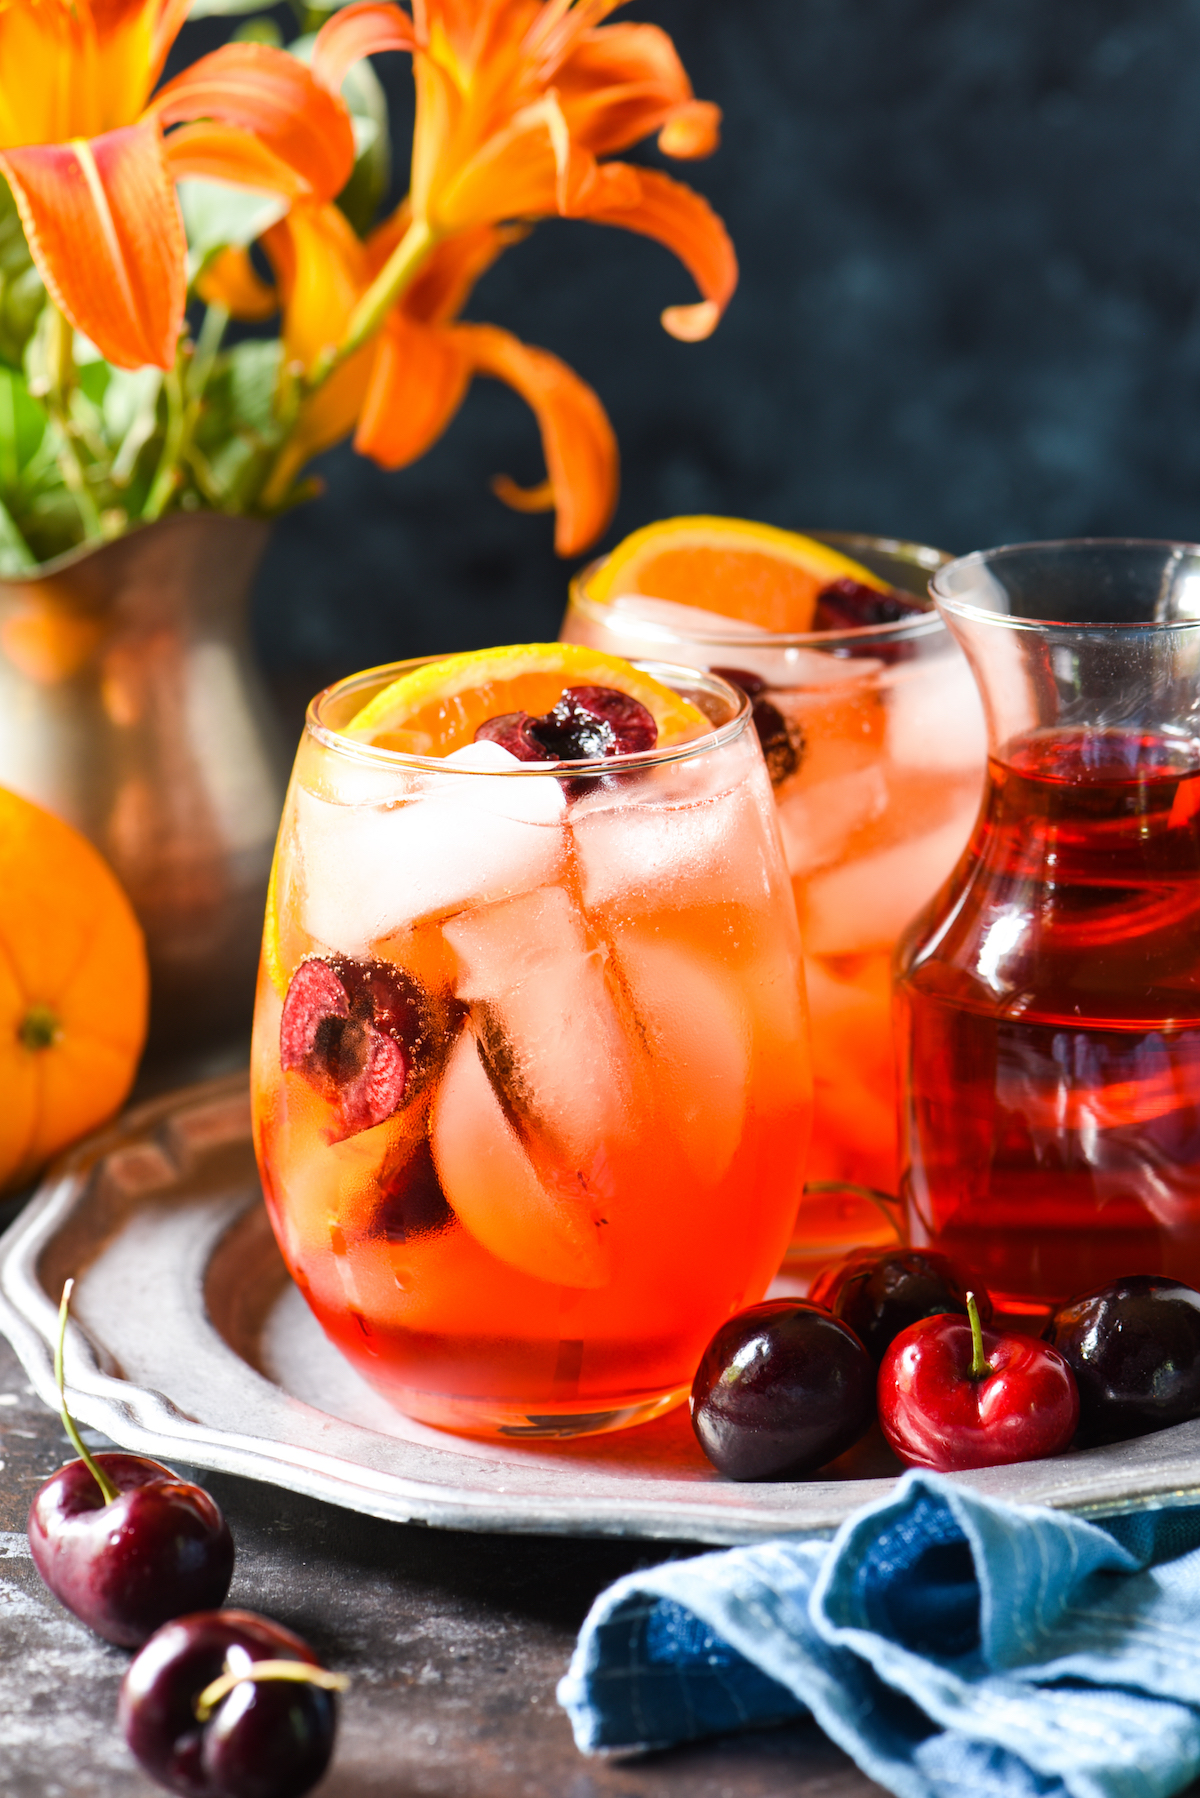 Image result for images of prosecco drink made with aperol